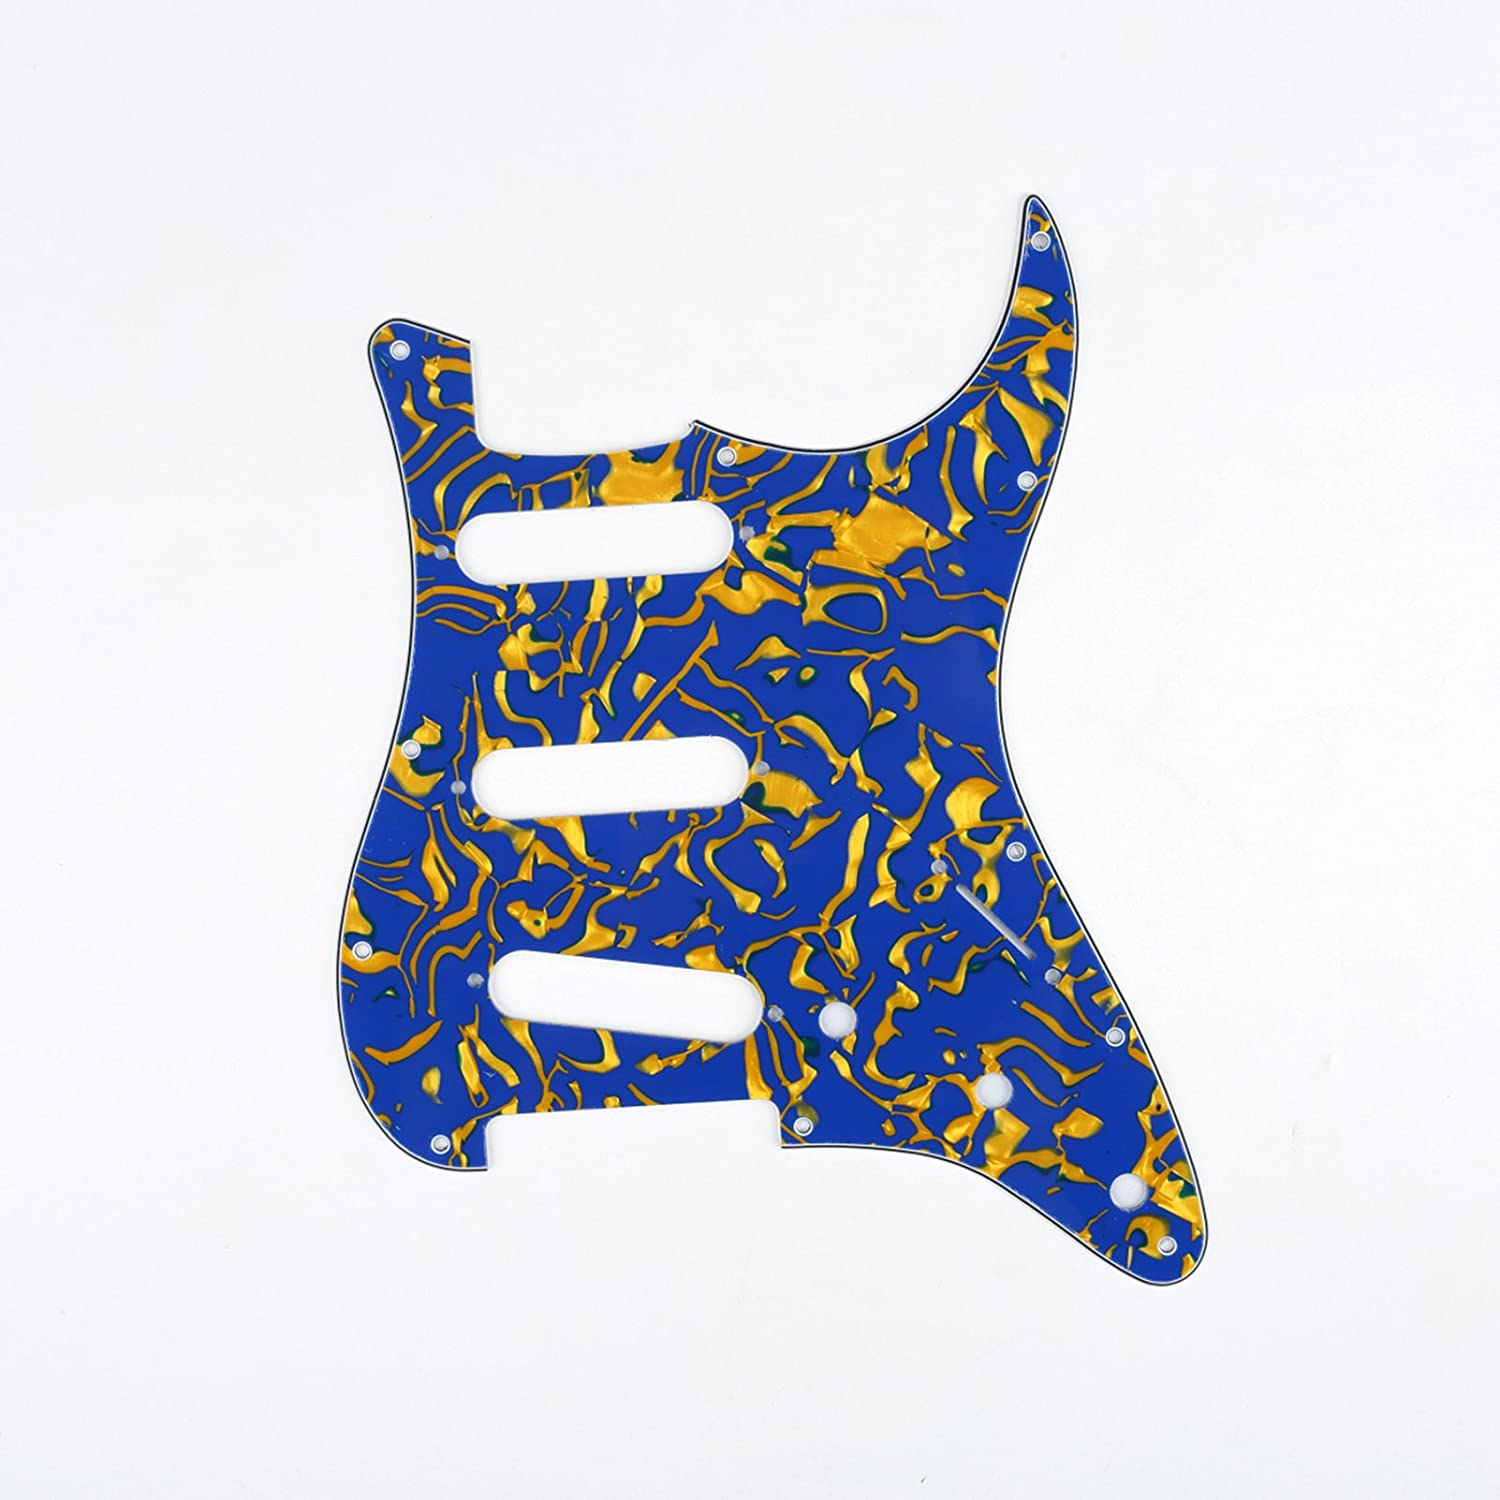 Musiclily SSS 11 Hole Guitar Stratocaster Pickguard for Fender American/Mexican Made Strat Standard Modern Style Parts,4 Ply White Pearl MX0120